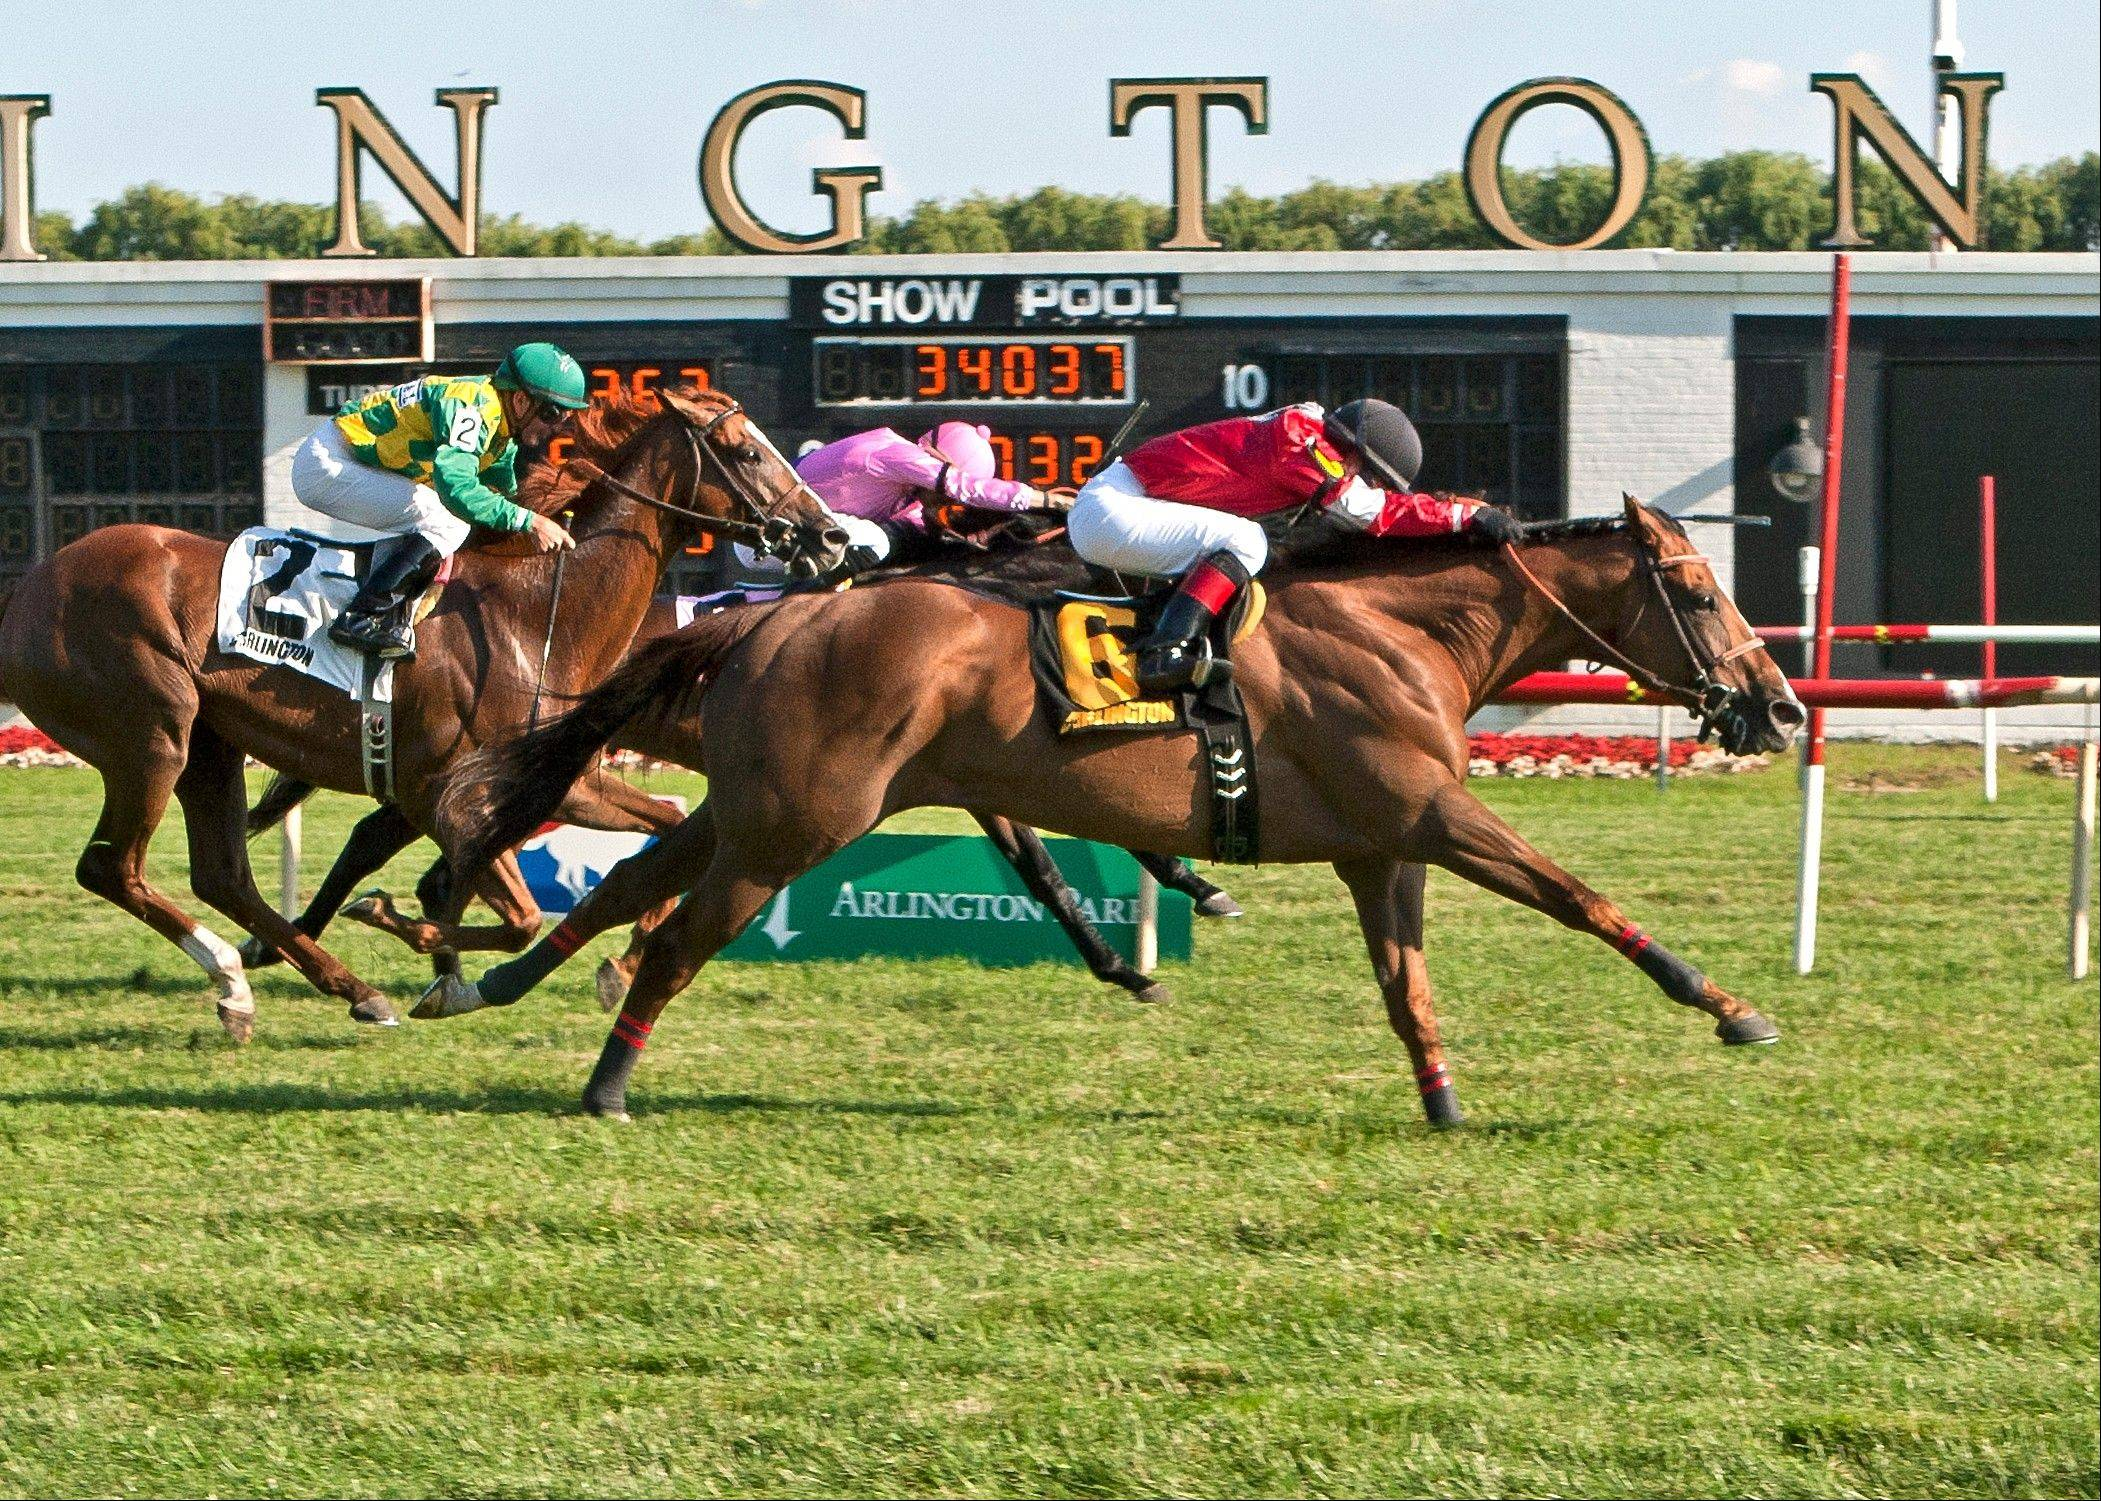 Jockey Rosie Napravnik guides Rahystrada to victory in the Arlington Handicap at Arlington Park on Saturday.